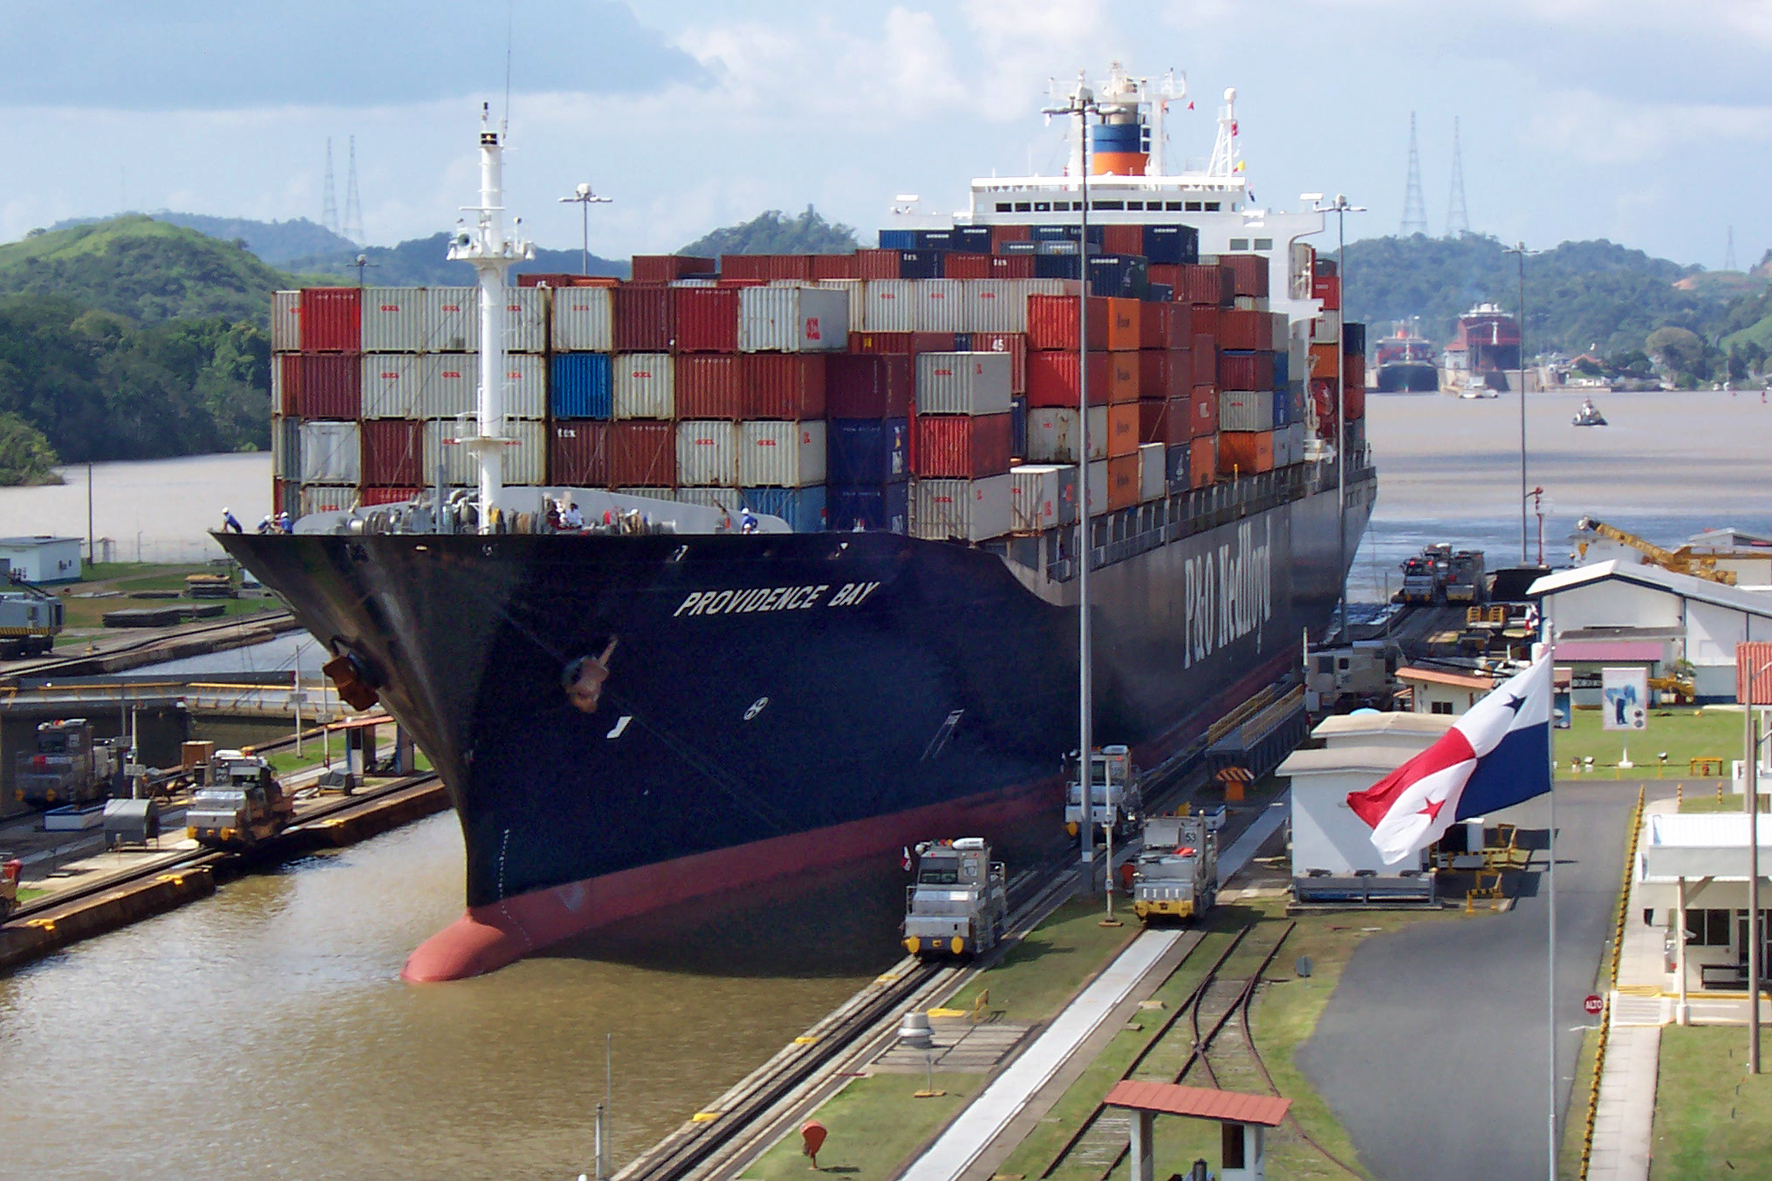 Ship_Providence_Bay_at_panama_canal